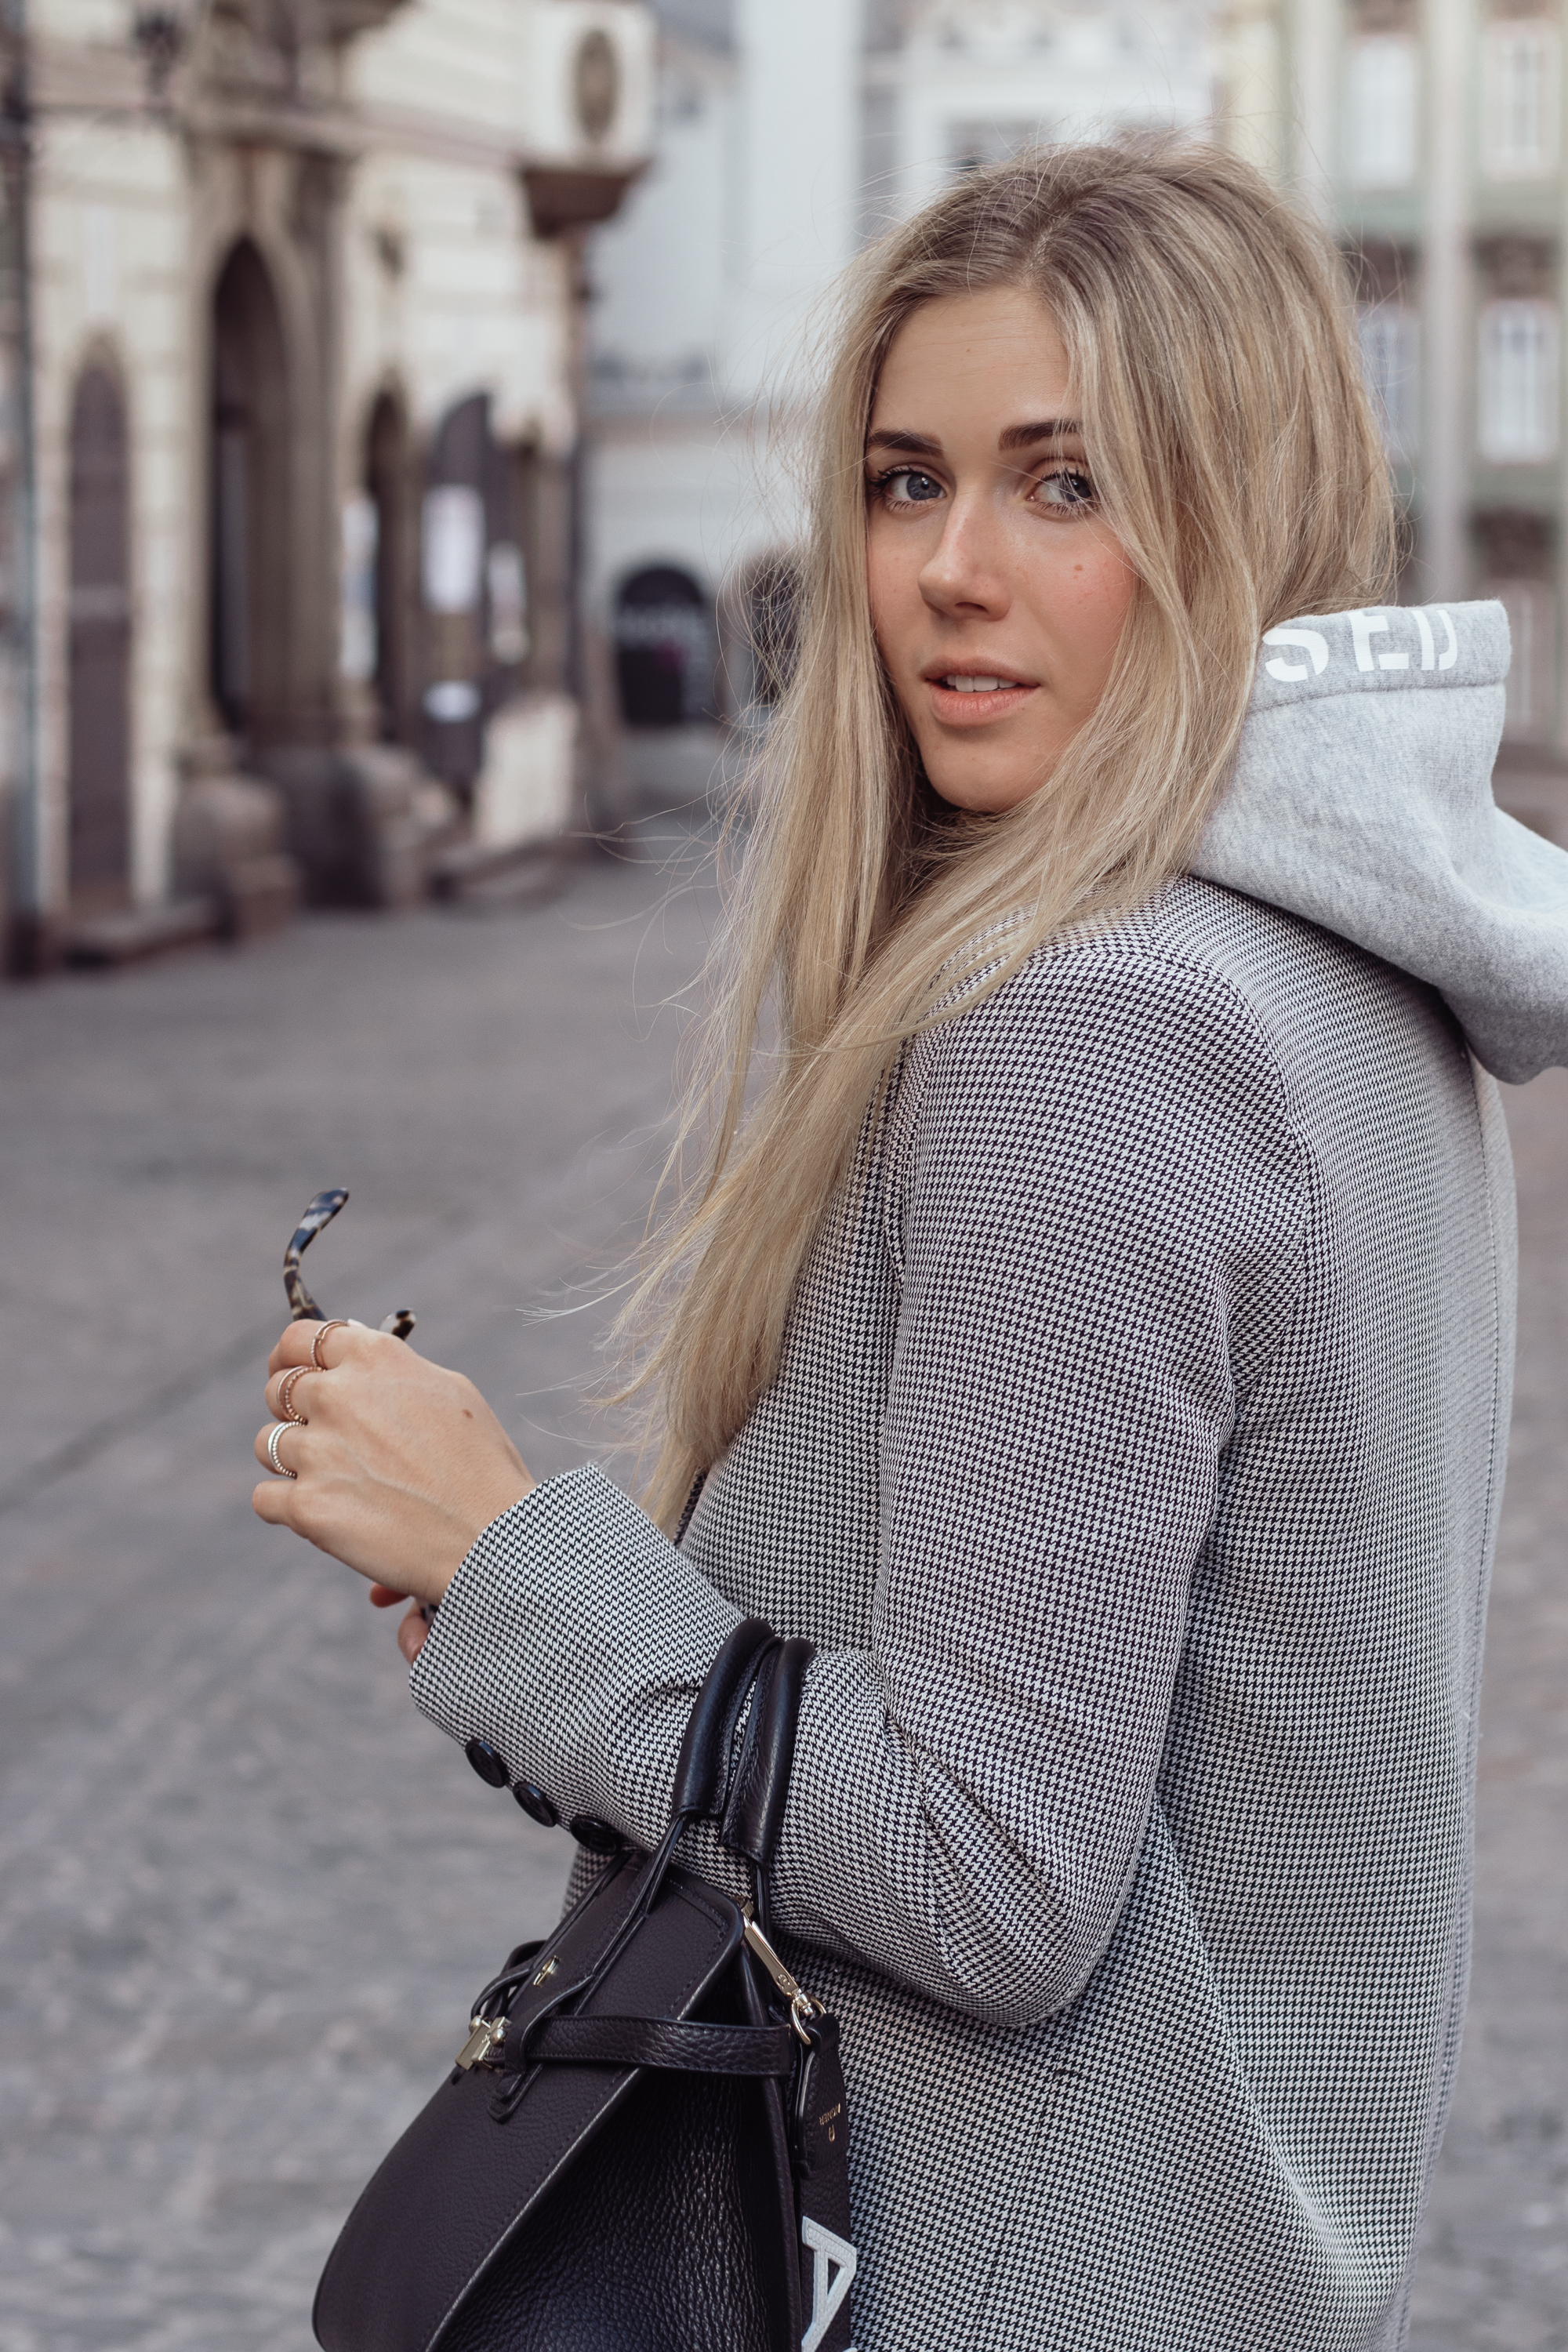 BLOG YOUR STYLE: Hoodies Bits and Bobs by Eva